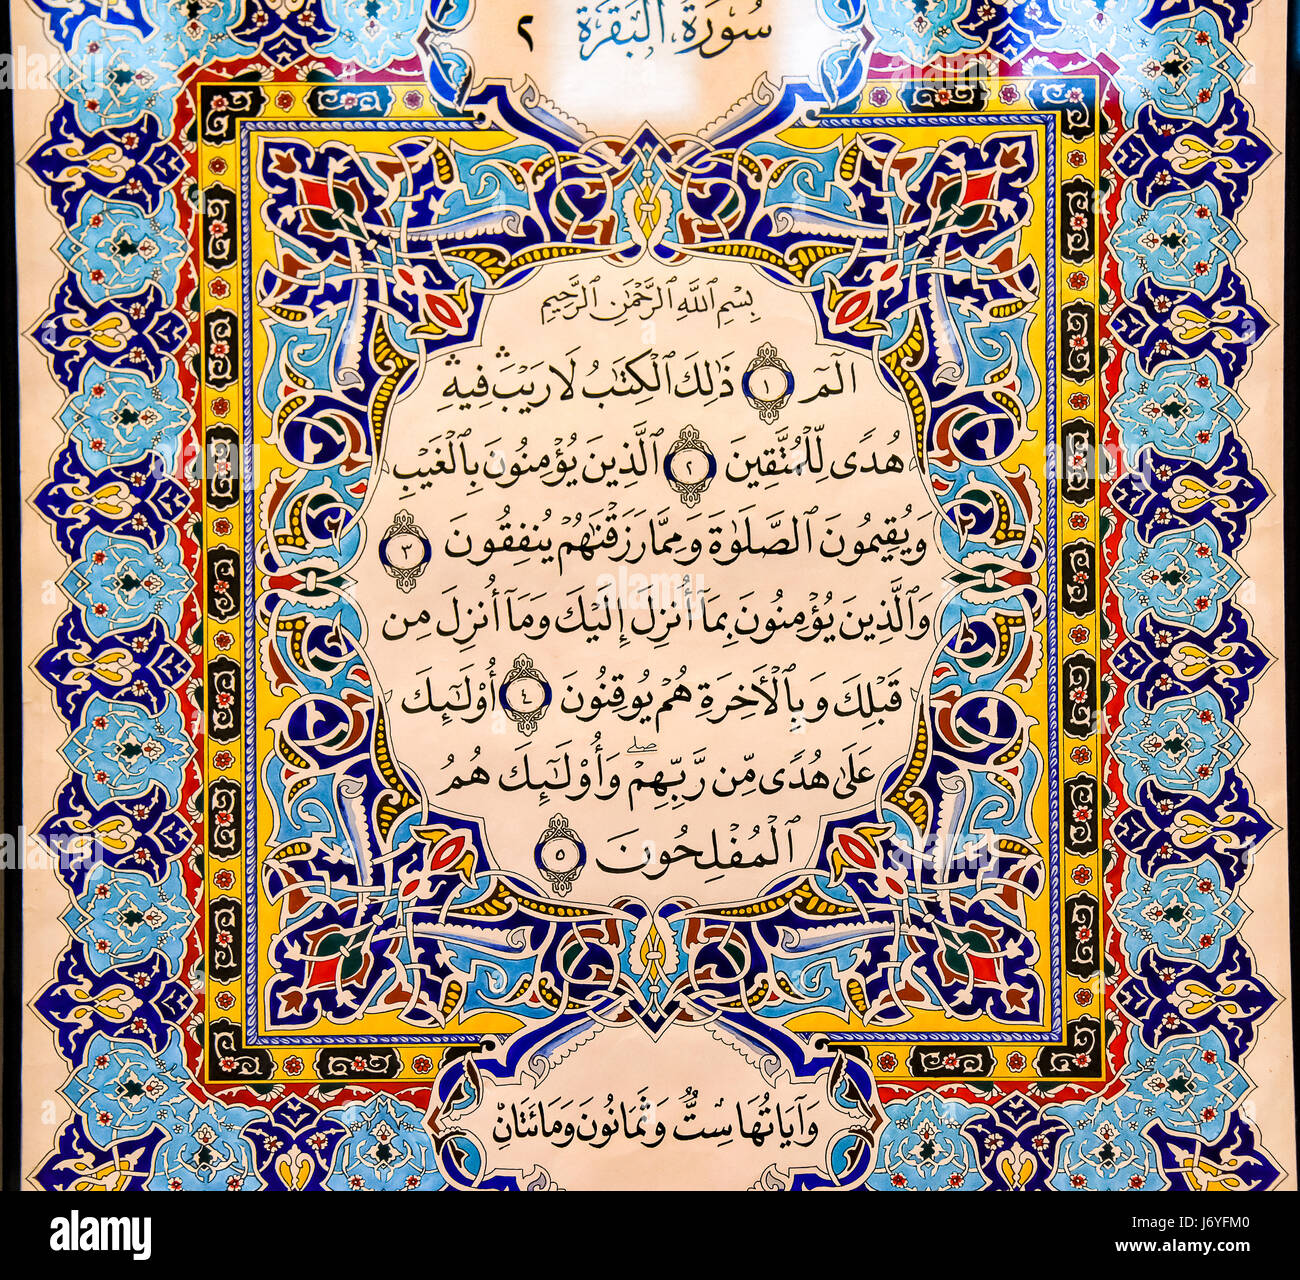 Oman Muscat Pages of the Holy Quran at the National Museum - Stock Image